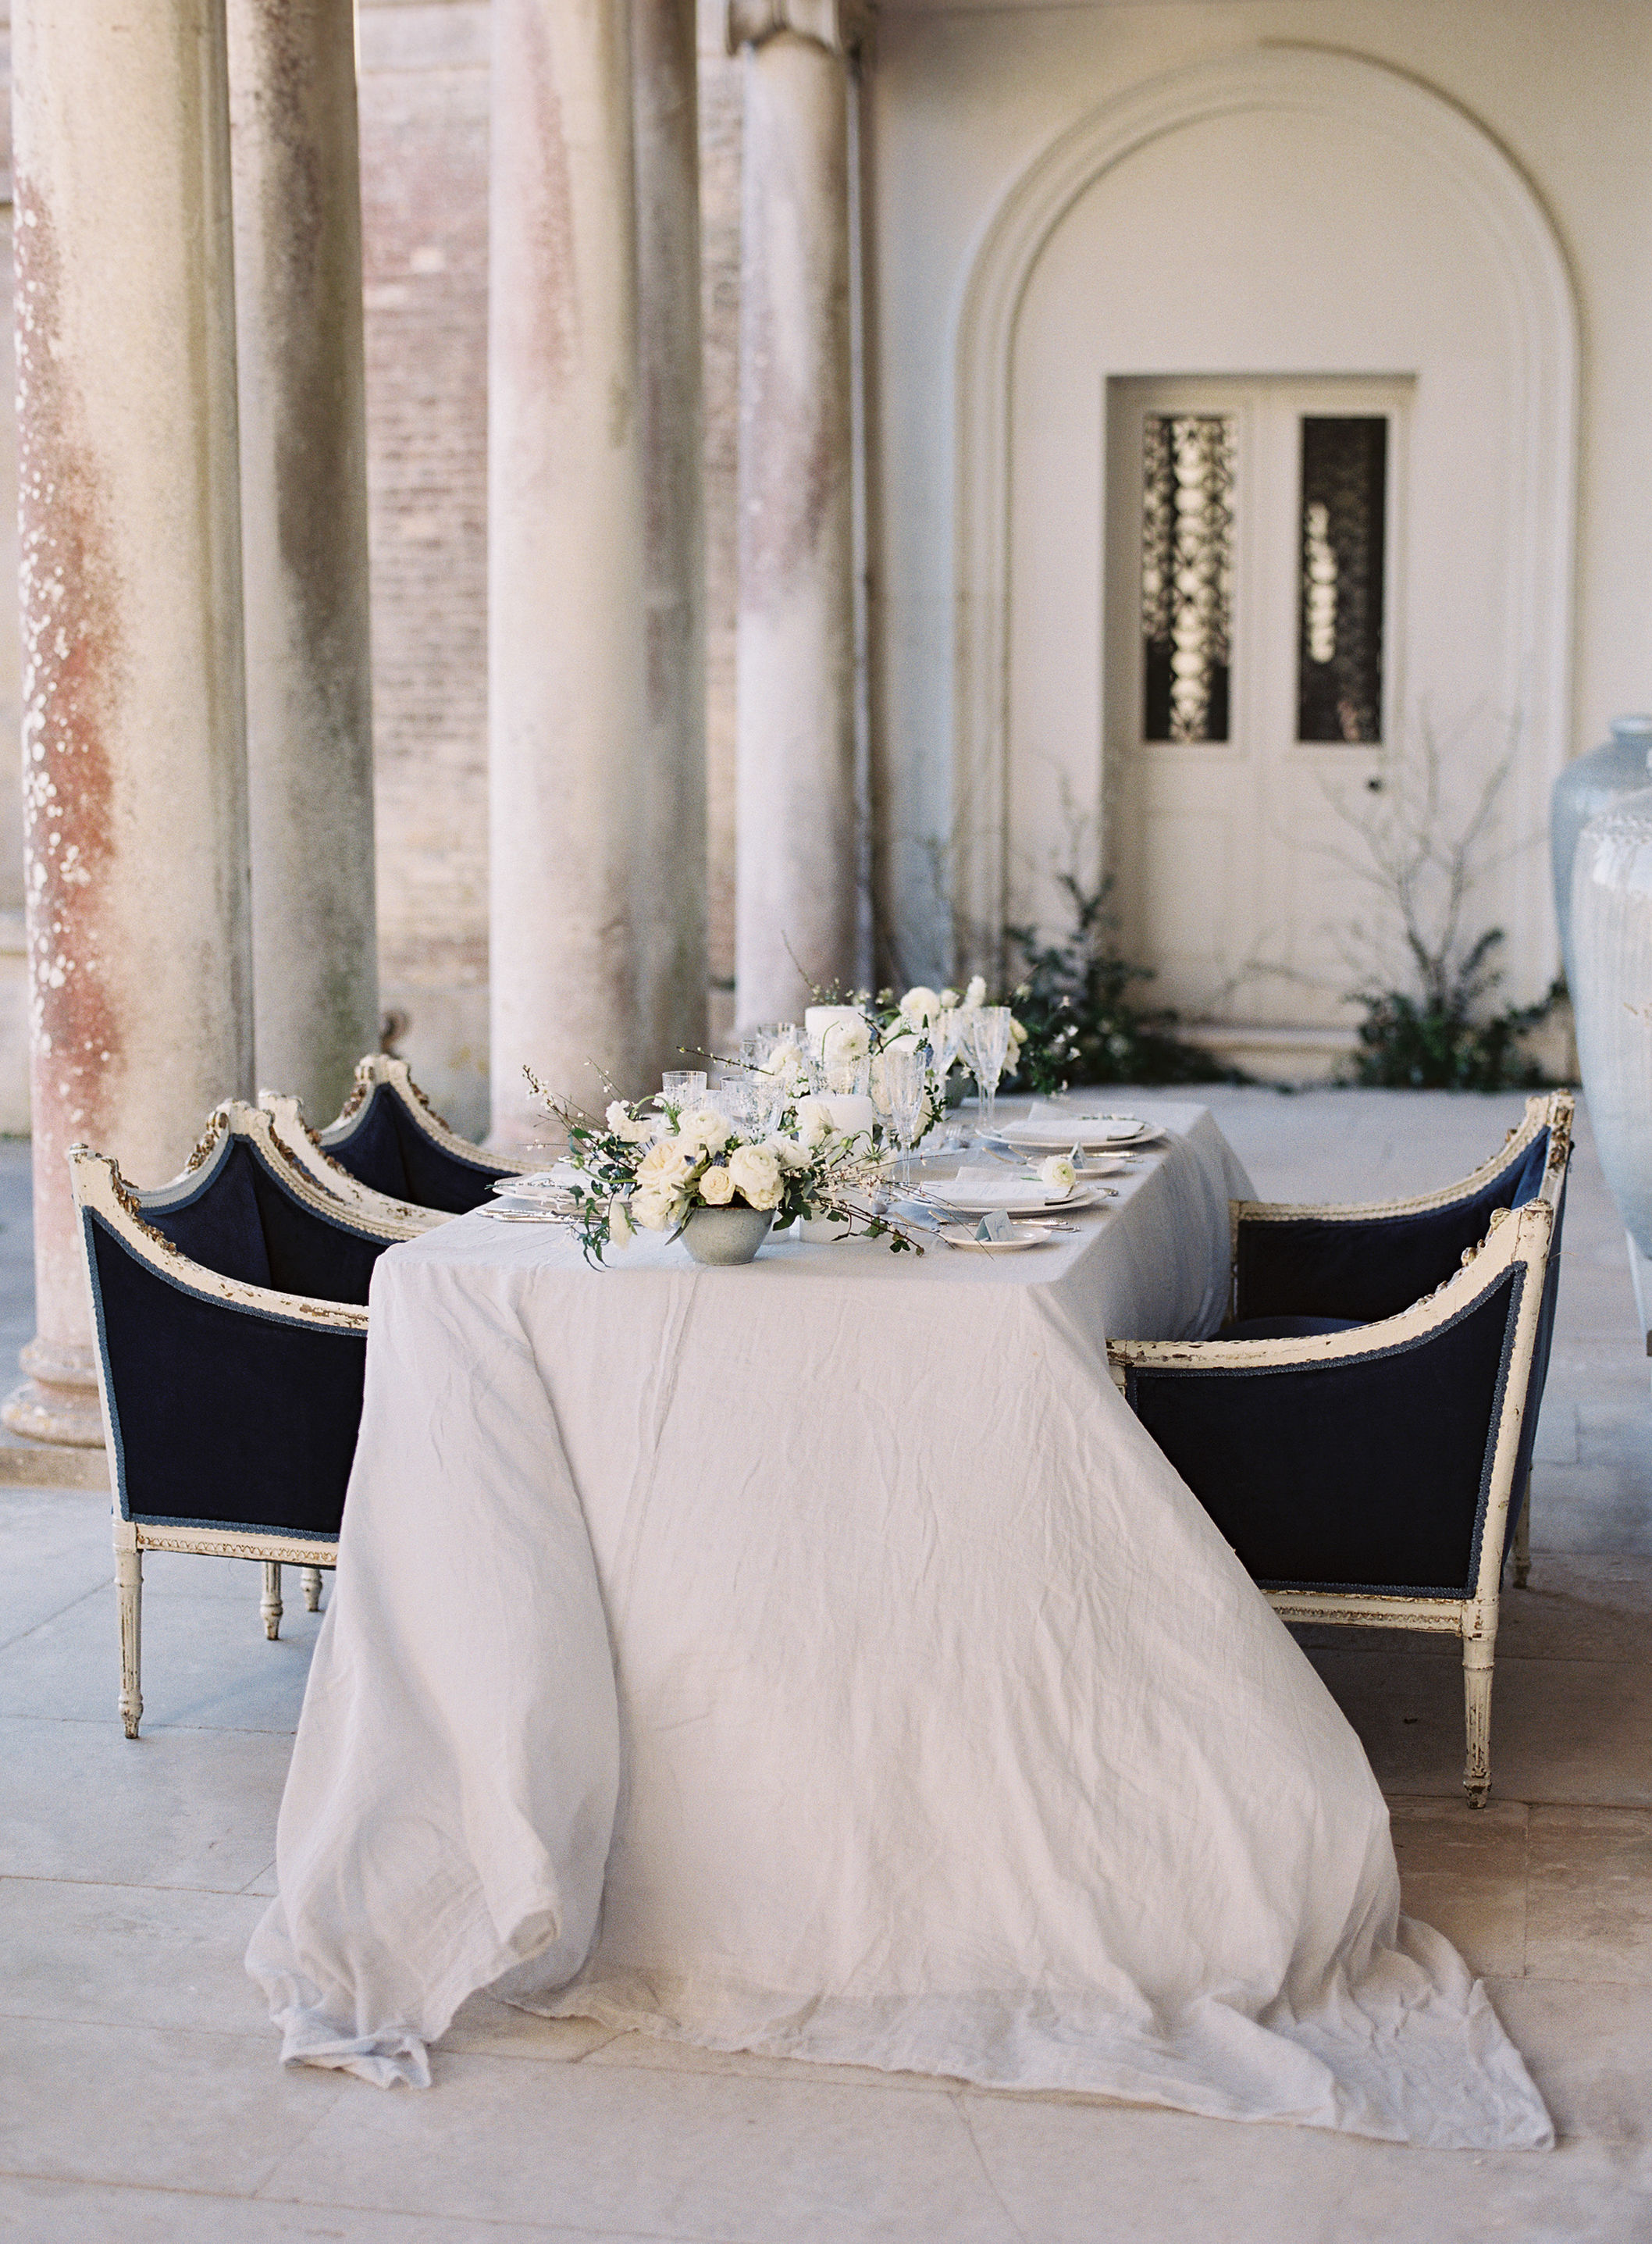 Romantic wedding table at Somerley House, Hampshire. Photo by Camilla Arnhold